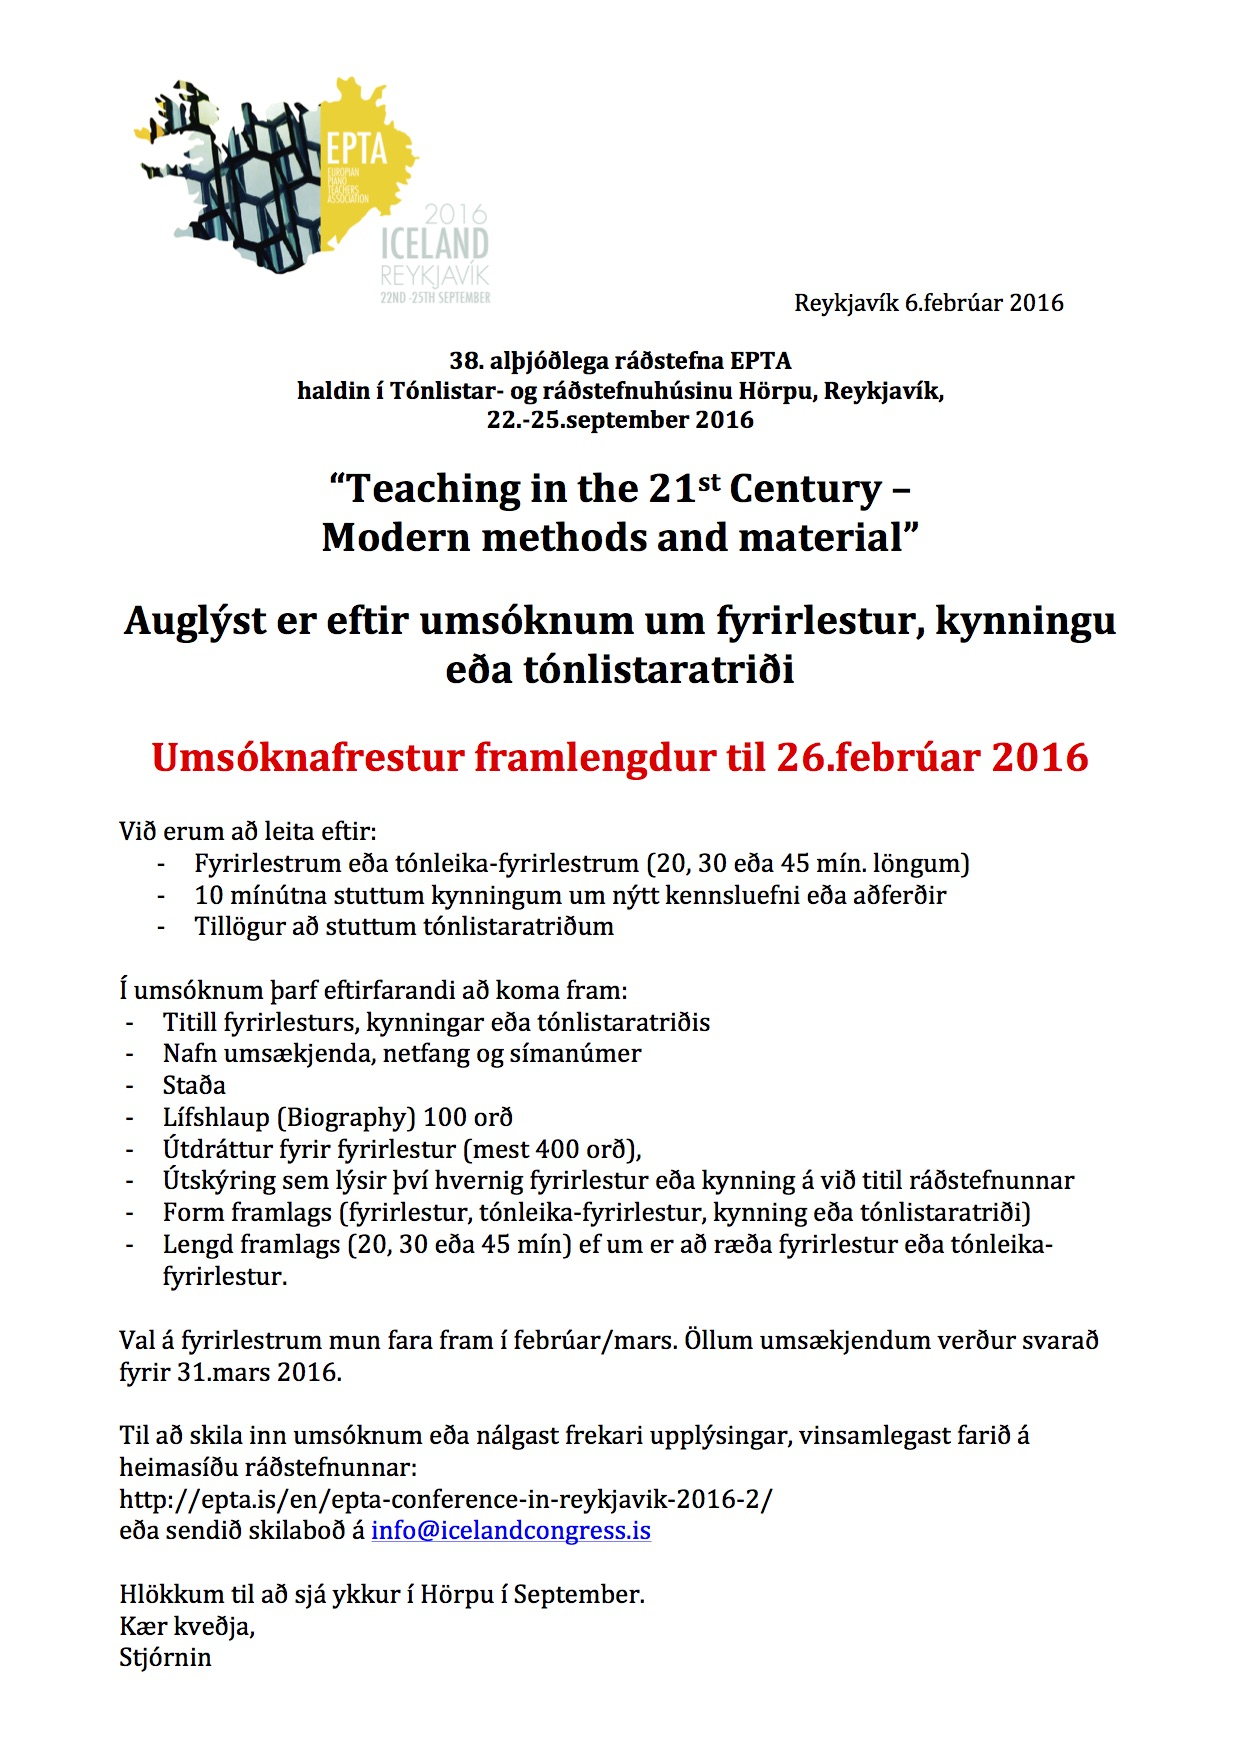 Call for papers isl framlengt